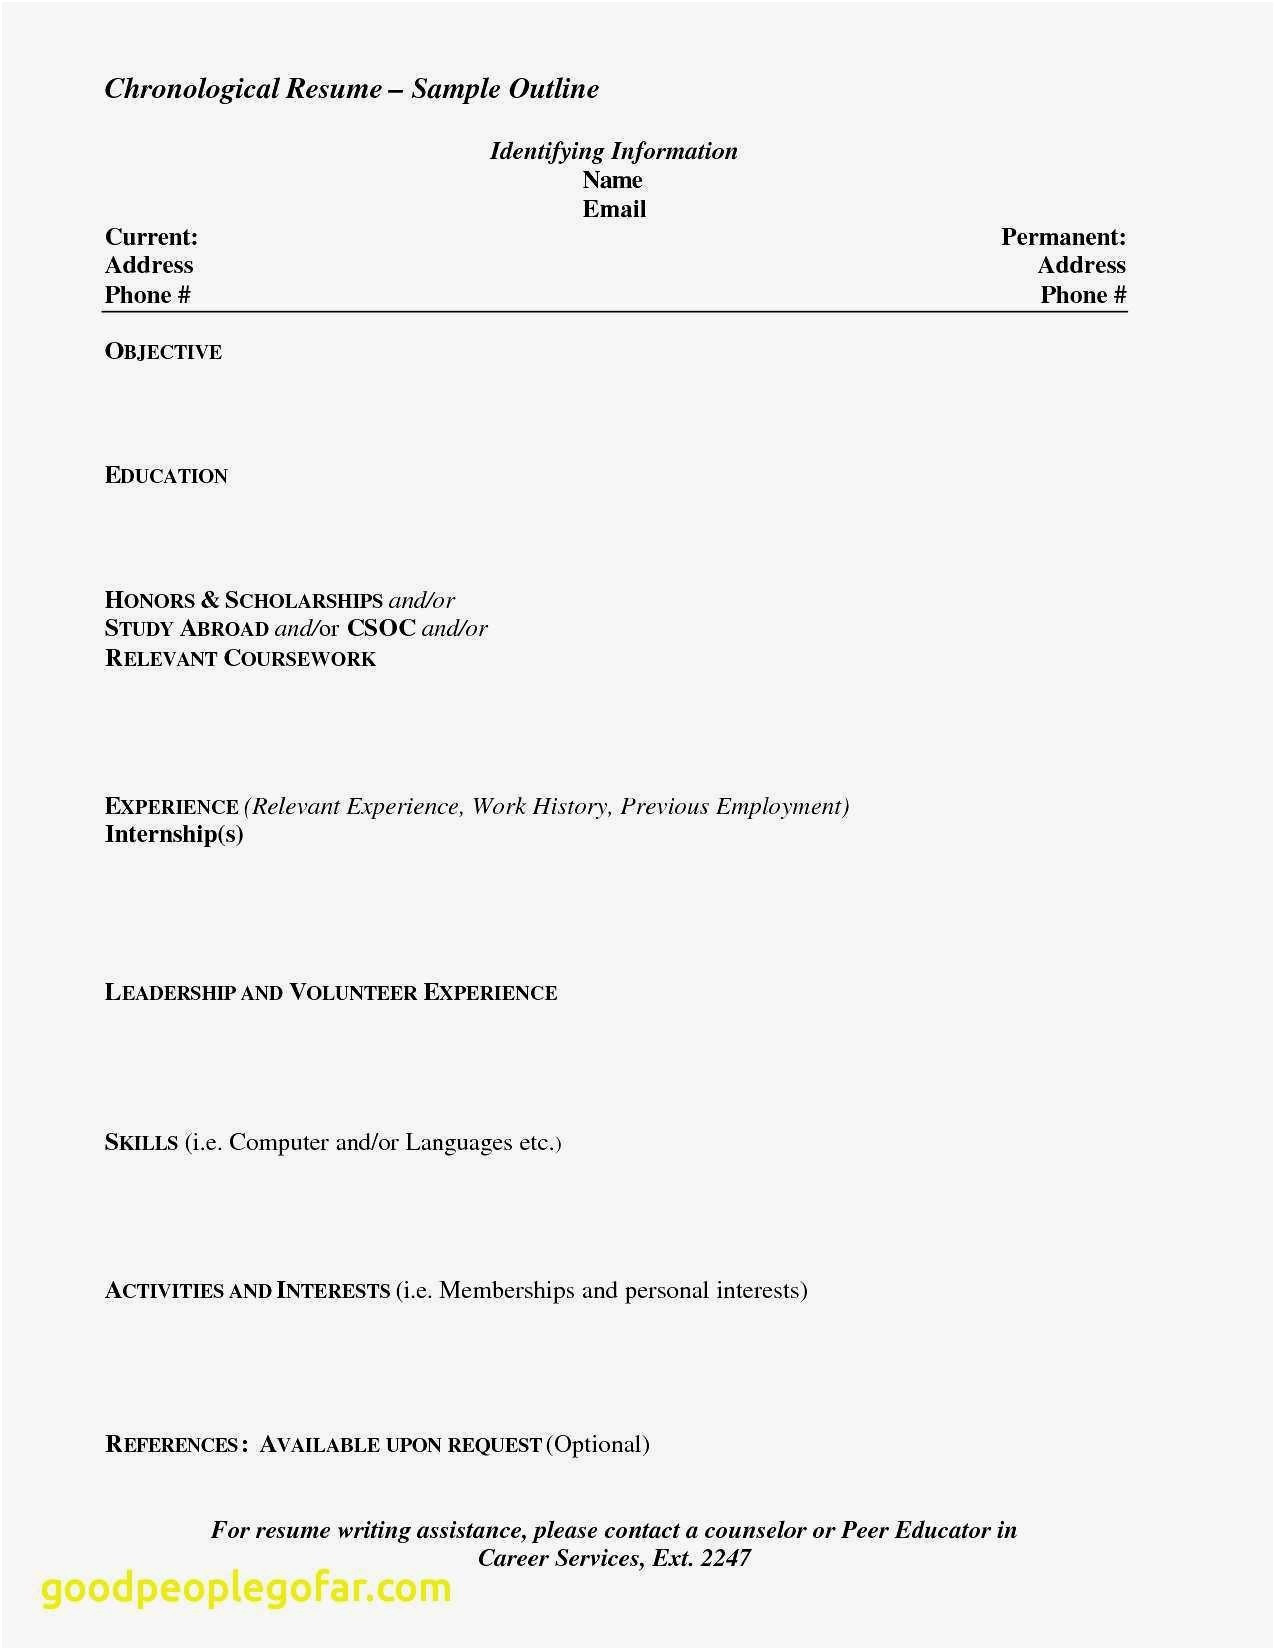 Free Resume Service - Good Objective Statement for Resume for Customer Service Free